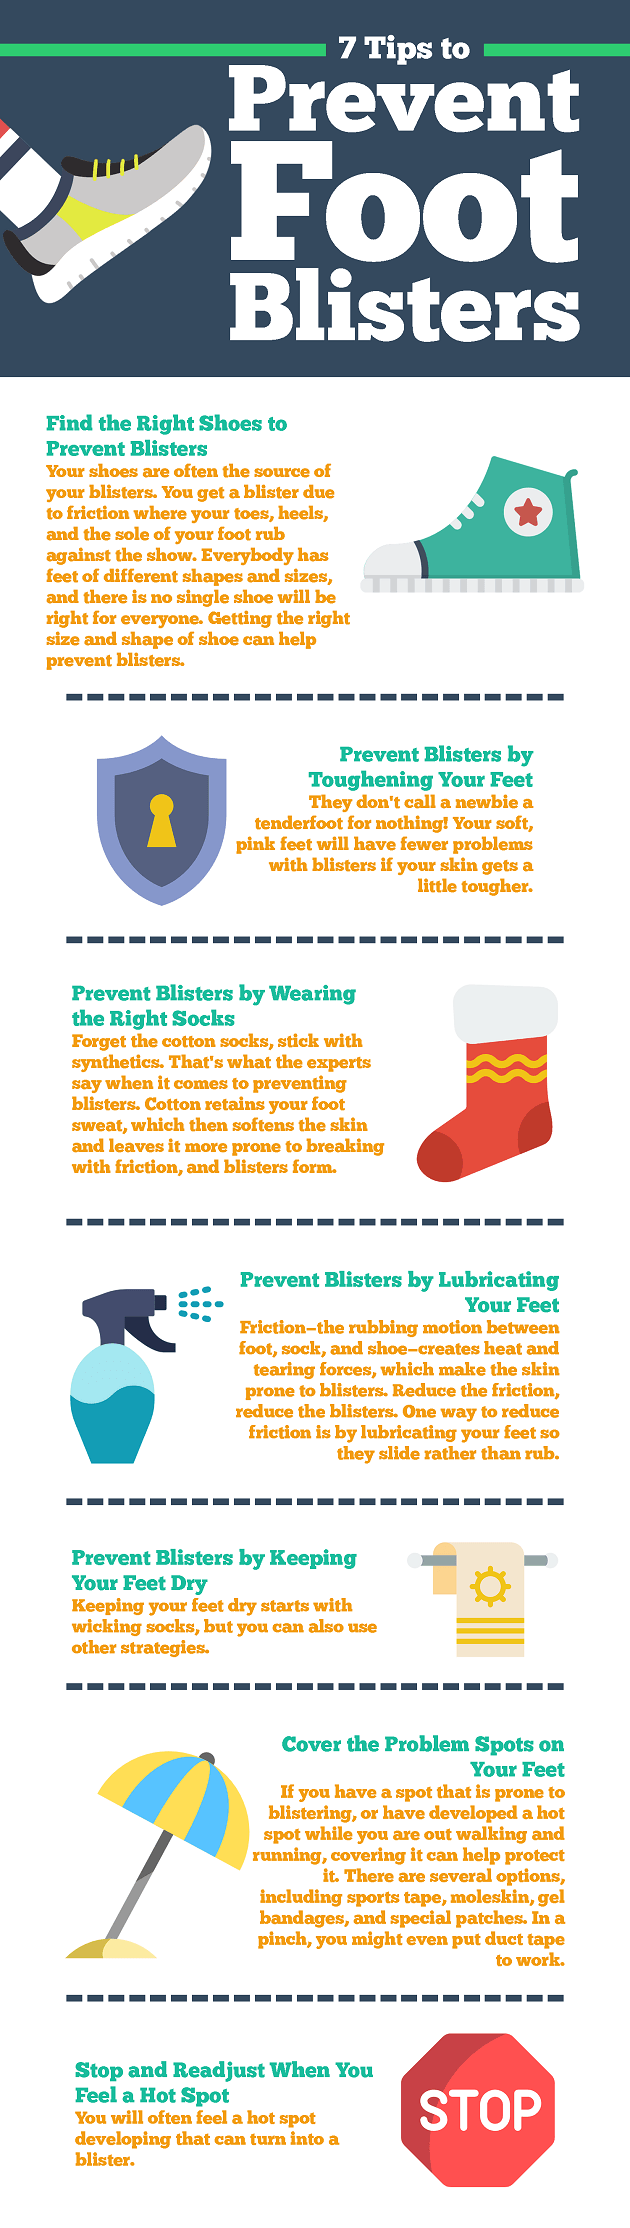 Tips To Prevent Blisters While Hiking